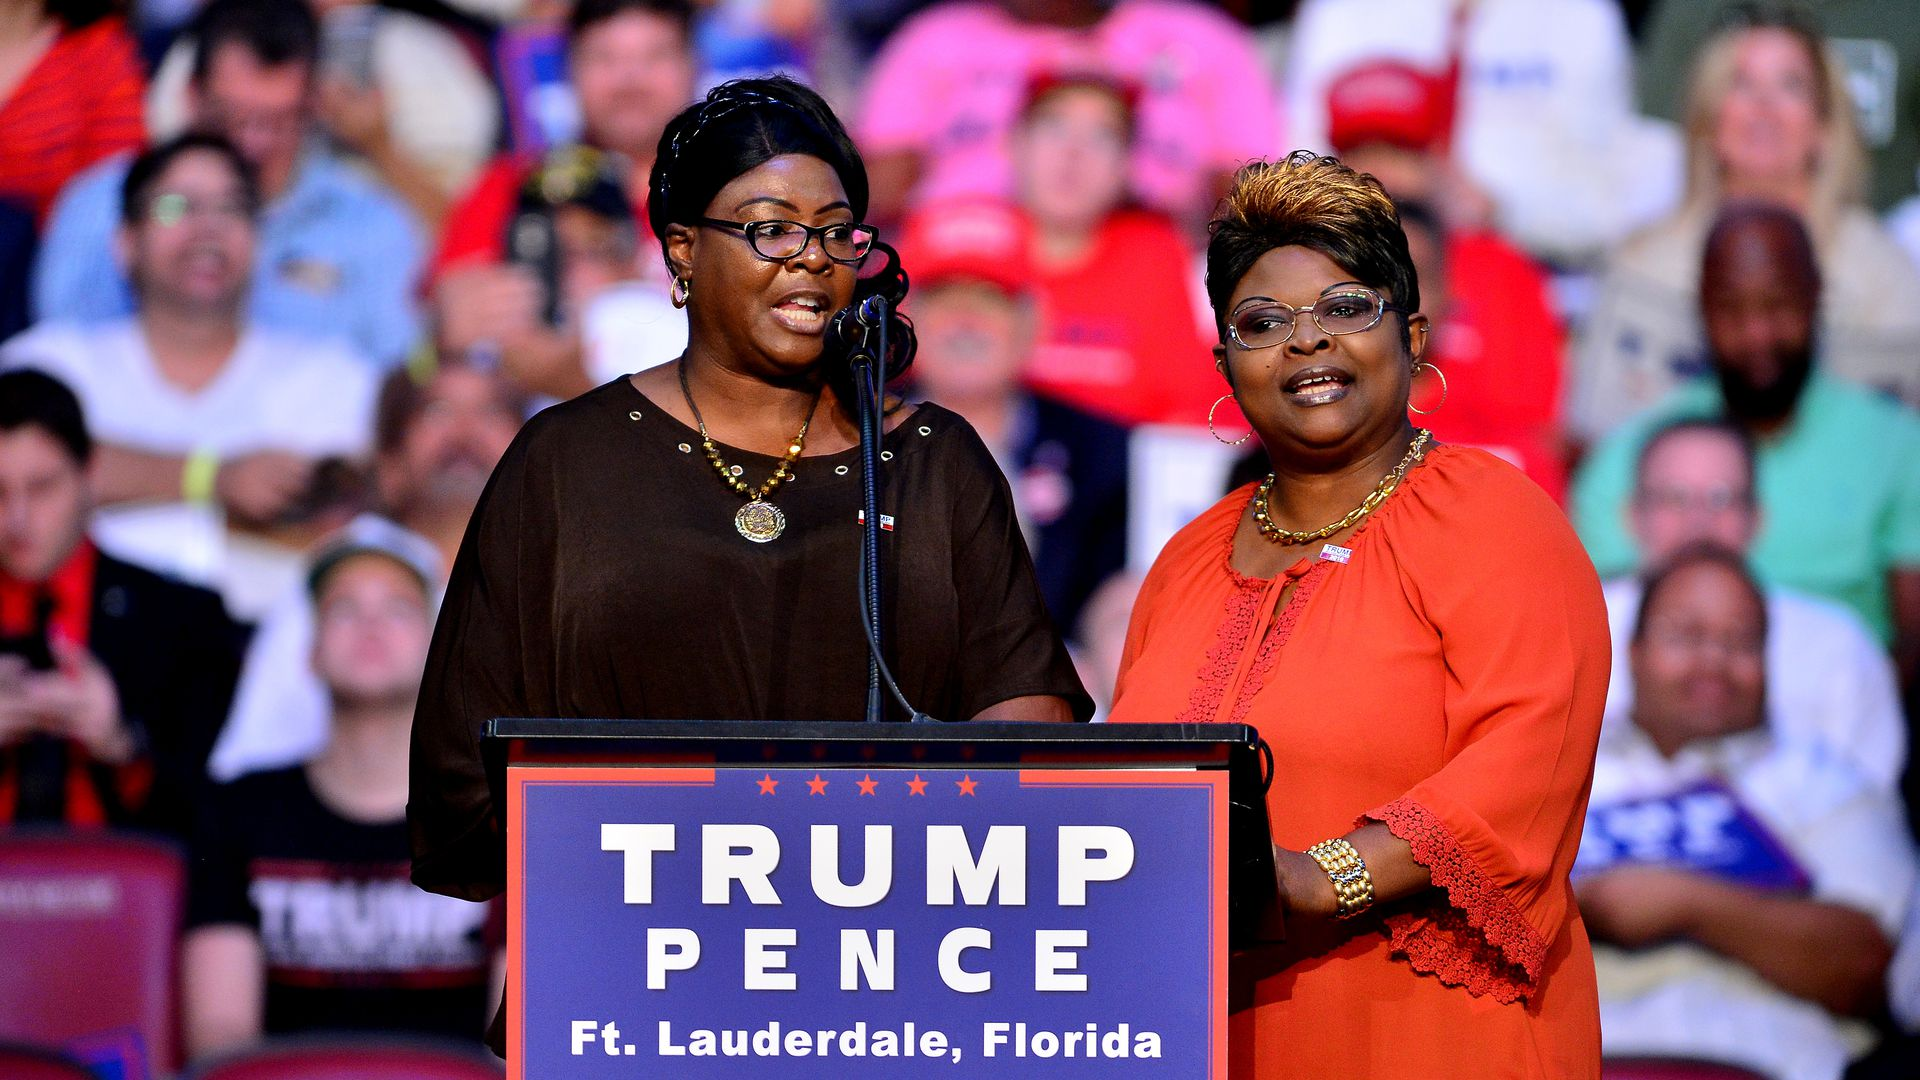 Diamond and Silk speak on stage at a Trump rally